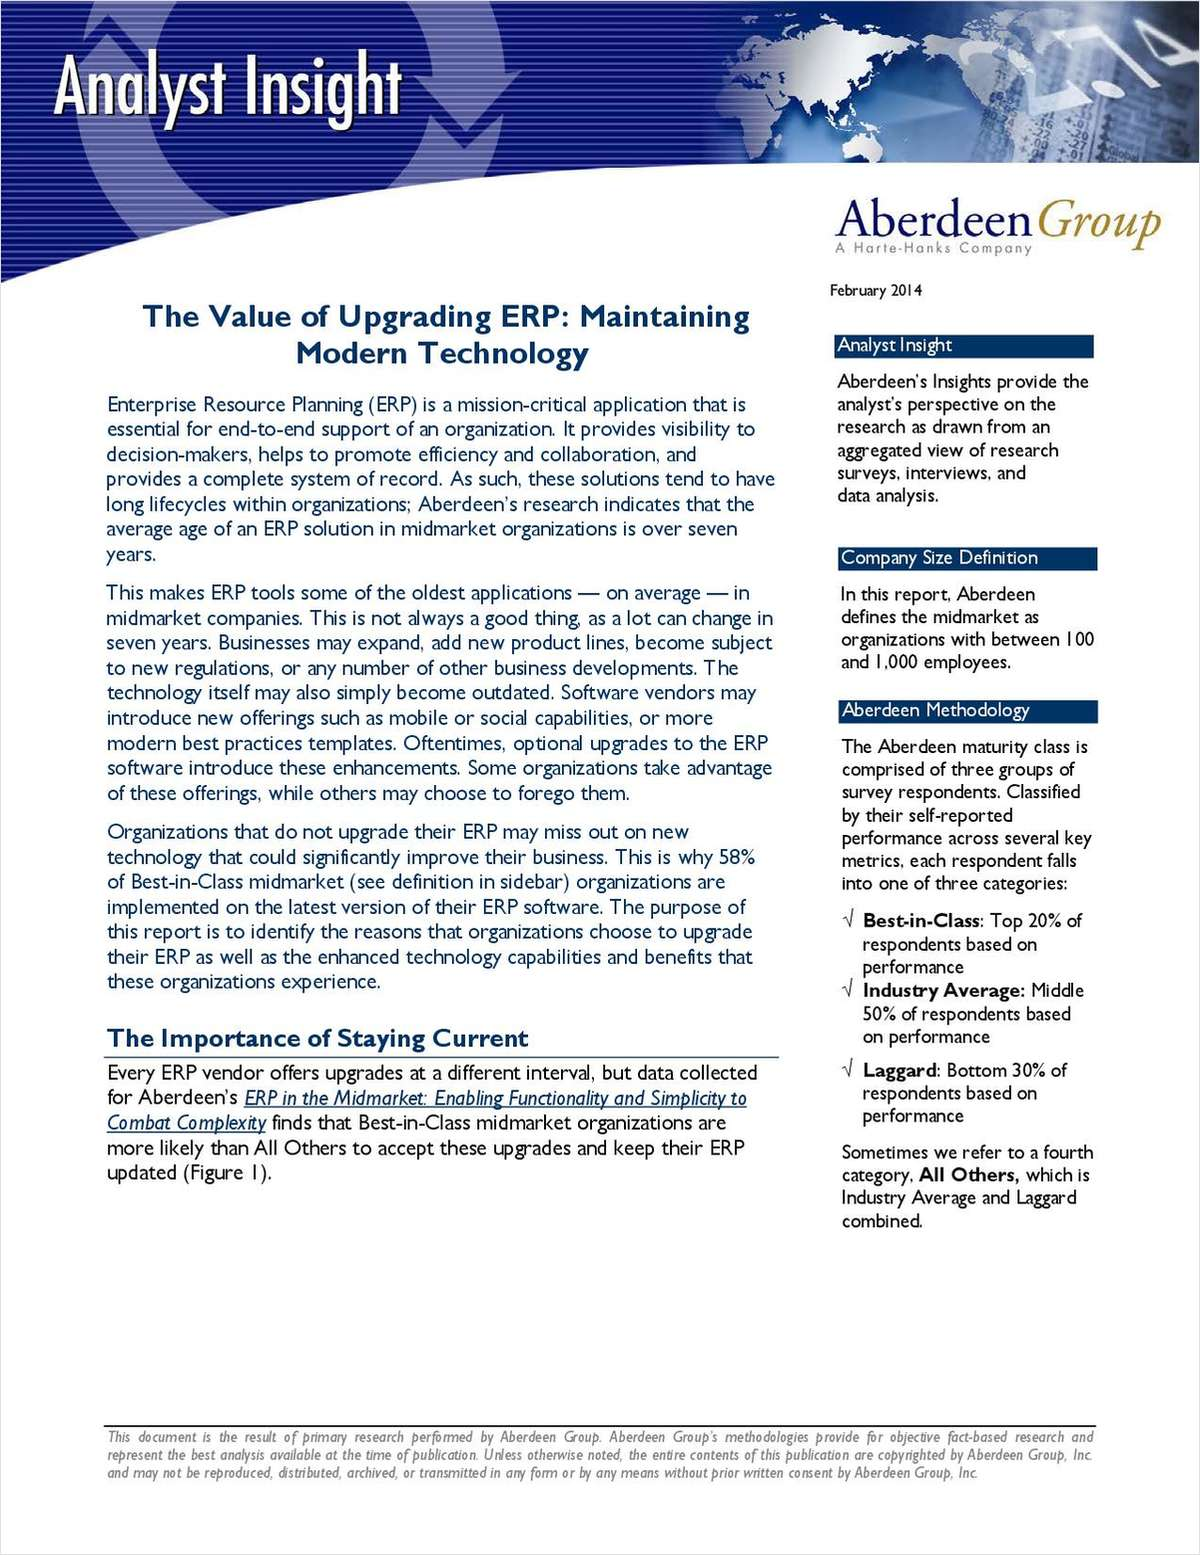 The Value of Updating ERP: Maintaining Modern Technology